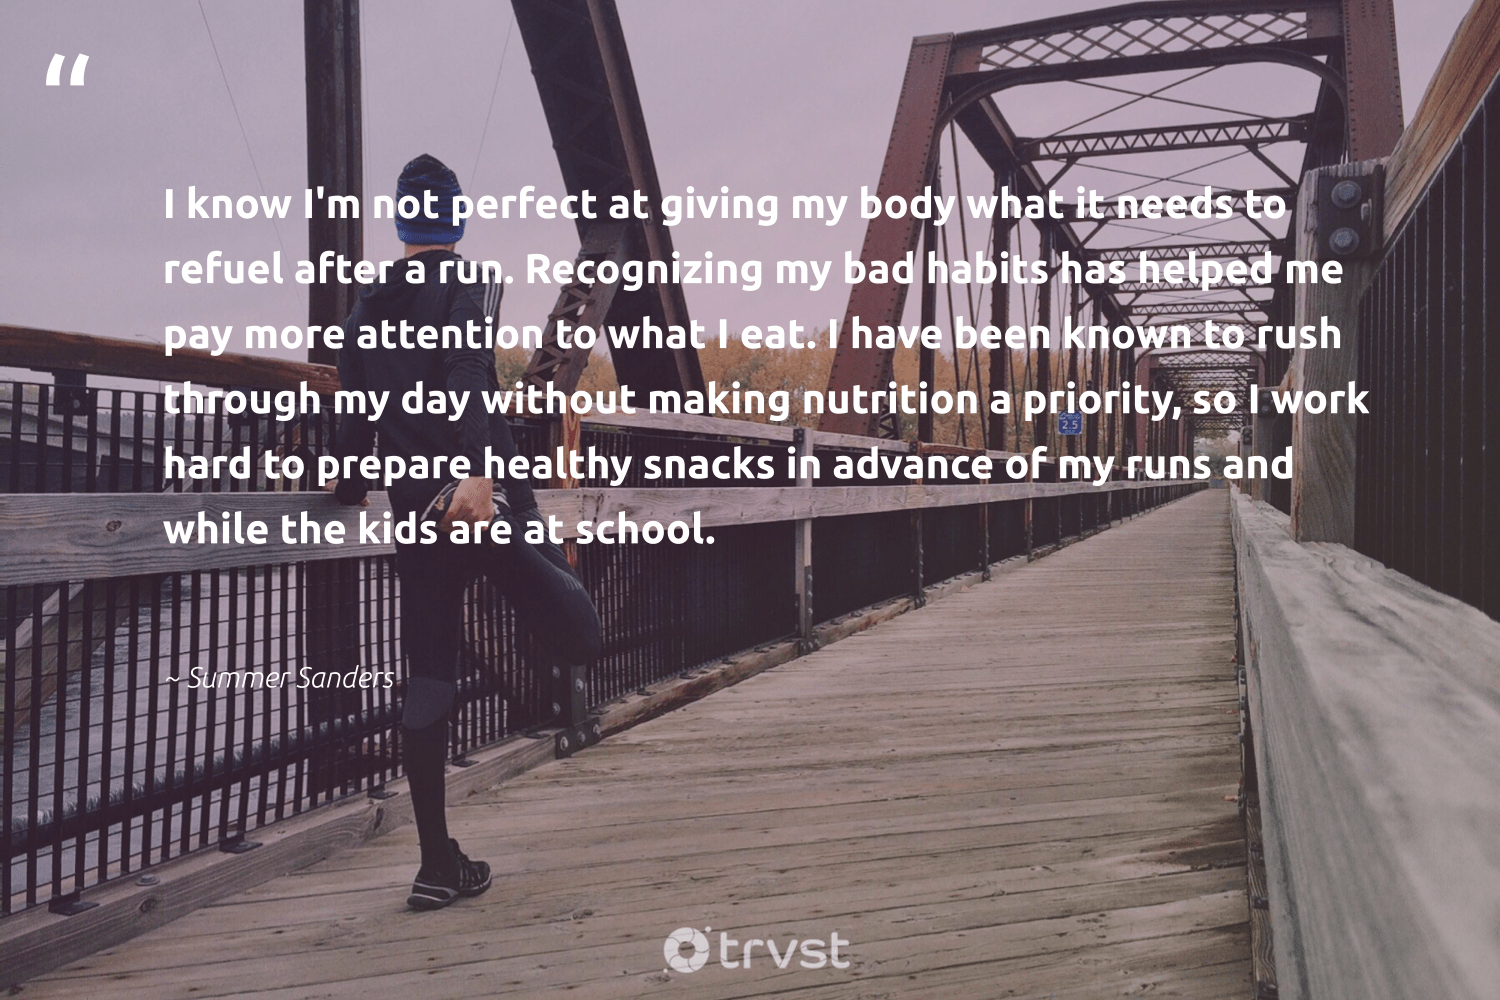 """I know I'm not perfect at giving my body what it needs to refuel after a run. Recognizing my bad habits has helped me pay more attention to what I eat. I have been known to rush through my day without making nutrition a priority, so I work hard to prepare healthy snacks in advance of my runs and while the kids are at school.""  - Summer Sanders #trvst #quotes #wellbeing #healthy #nutrition #wellness #nevergiveup #mindset #dotherightthing #changemakers #togetherwecan #bethechange"